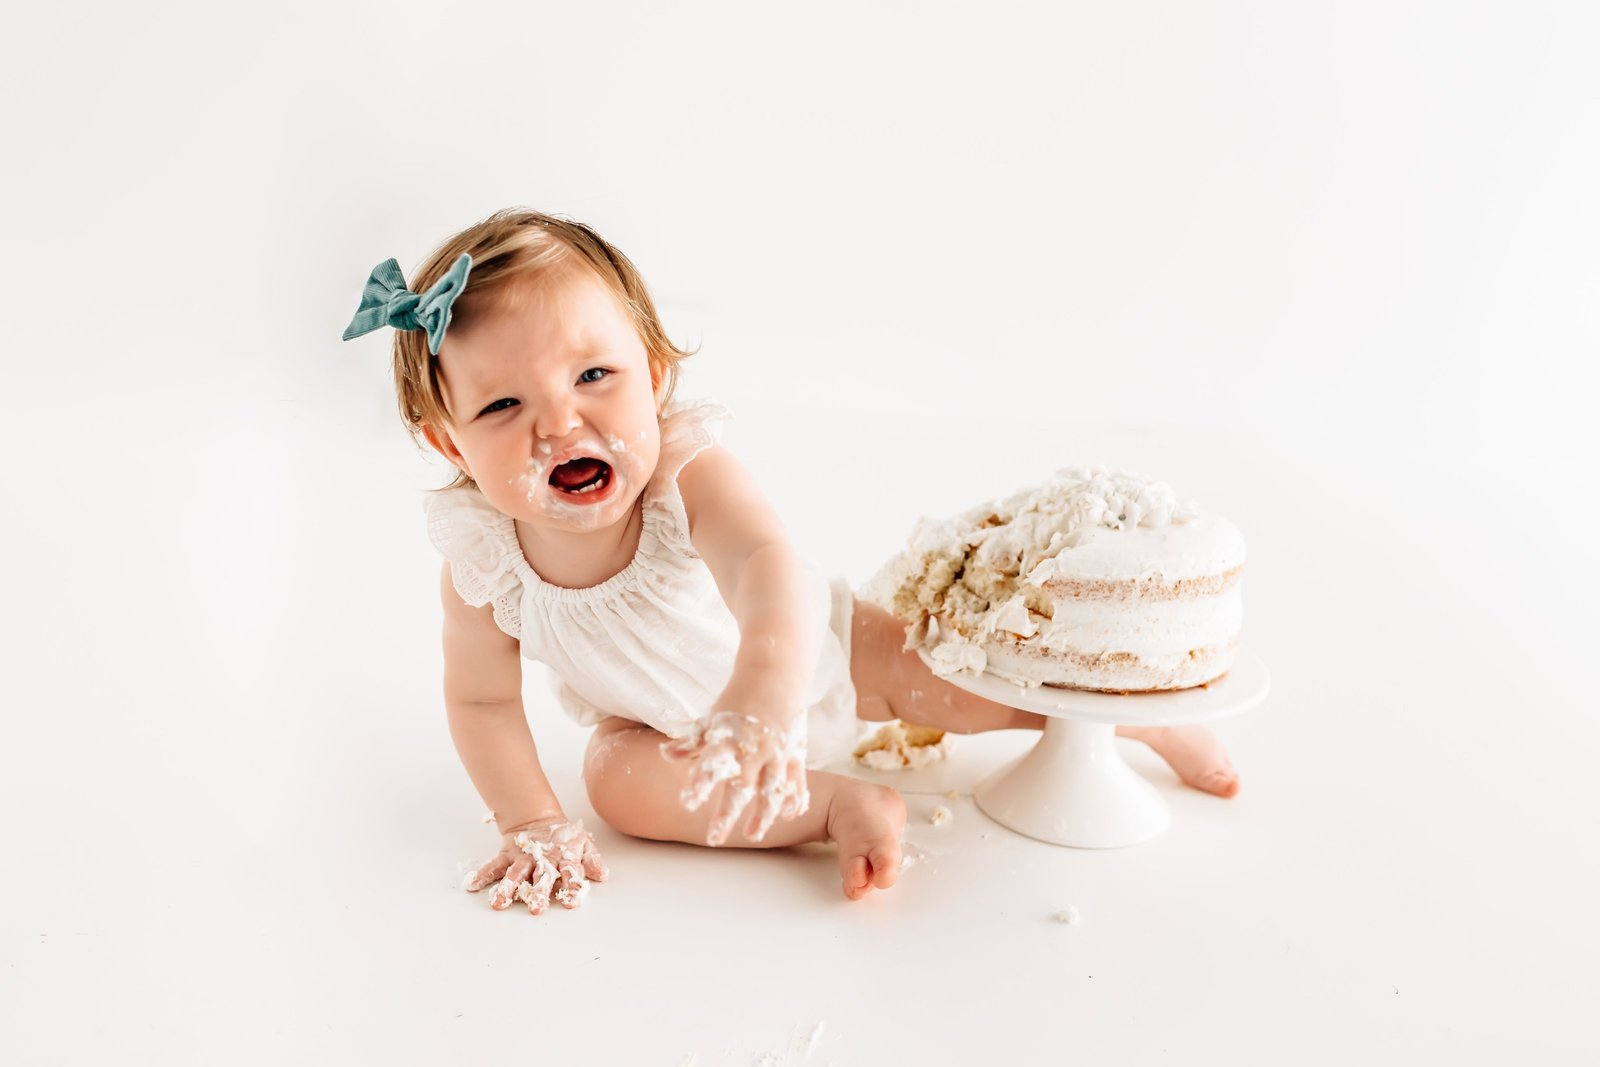 St_Louis_Baby_Photographer_Kelly_Laramore_Photography_122